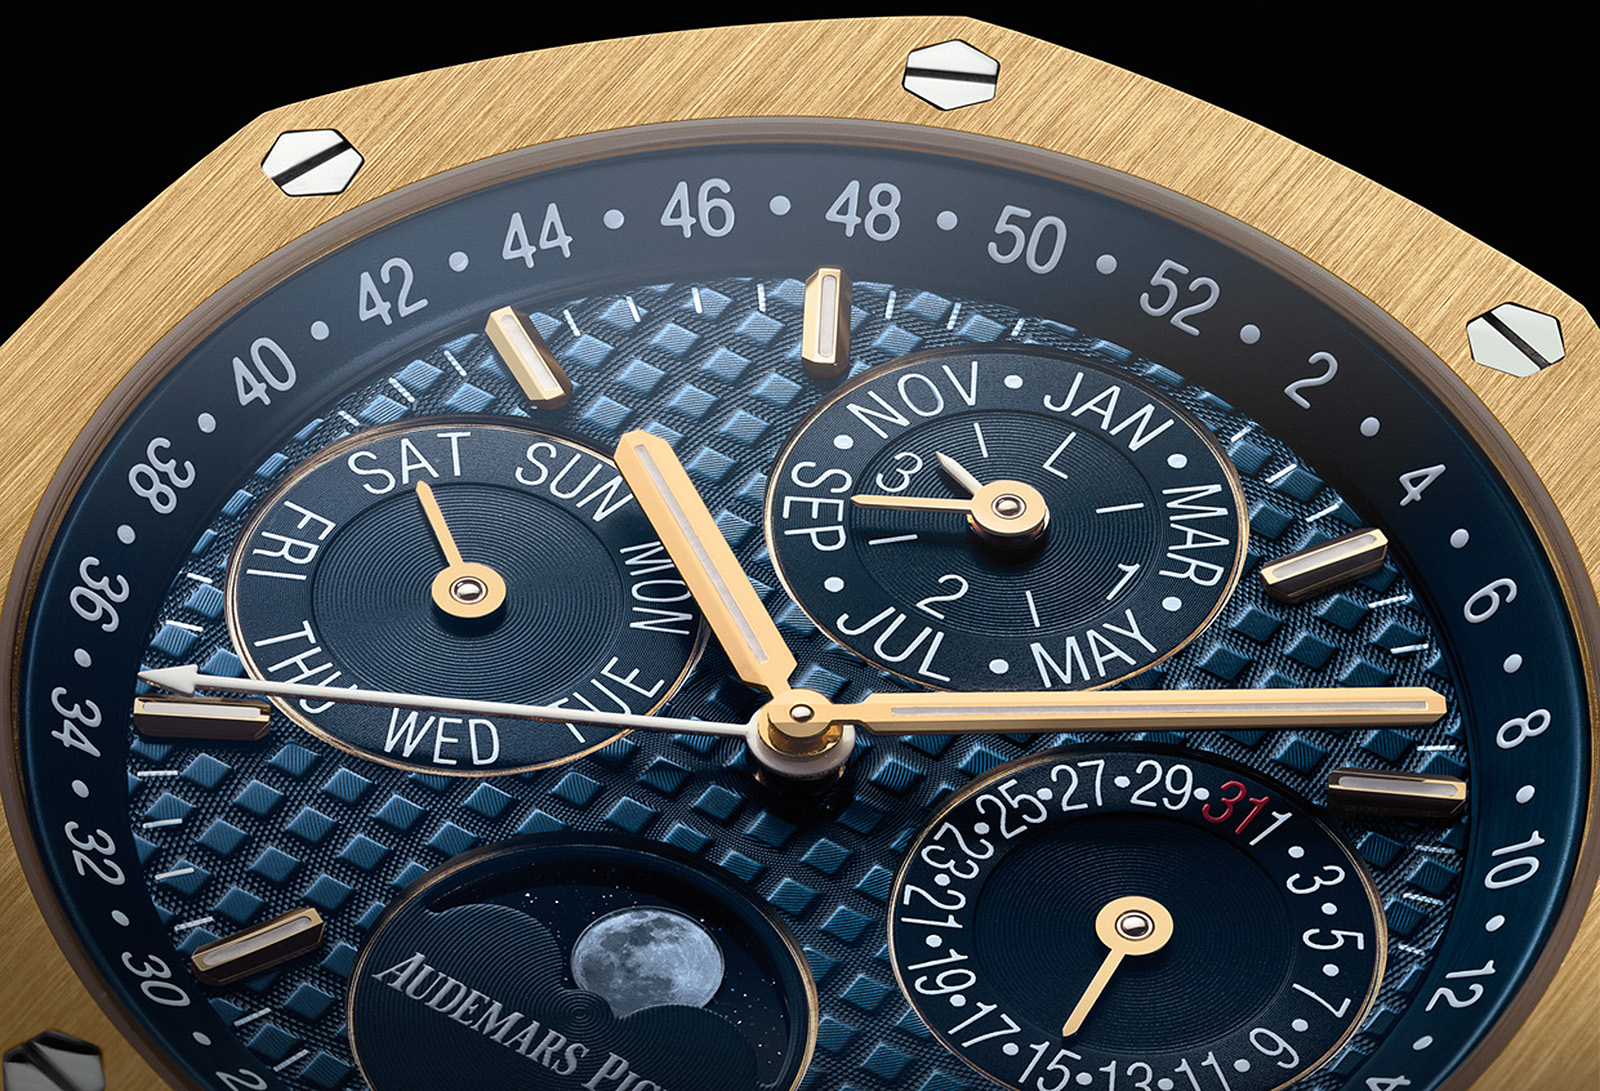 Audemars Piguet Royal Oak Perpetual Calendar Yellow Gold crop esfera